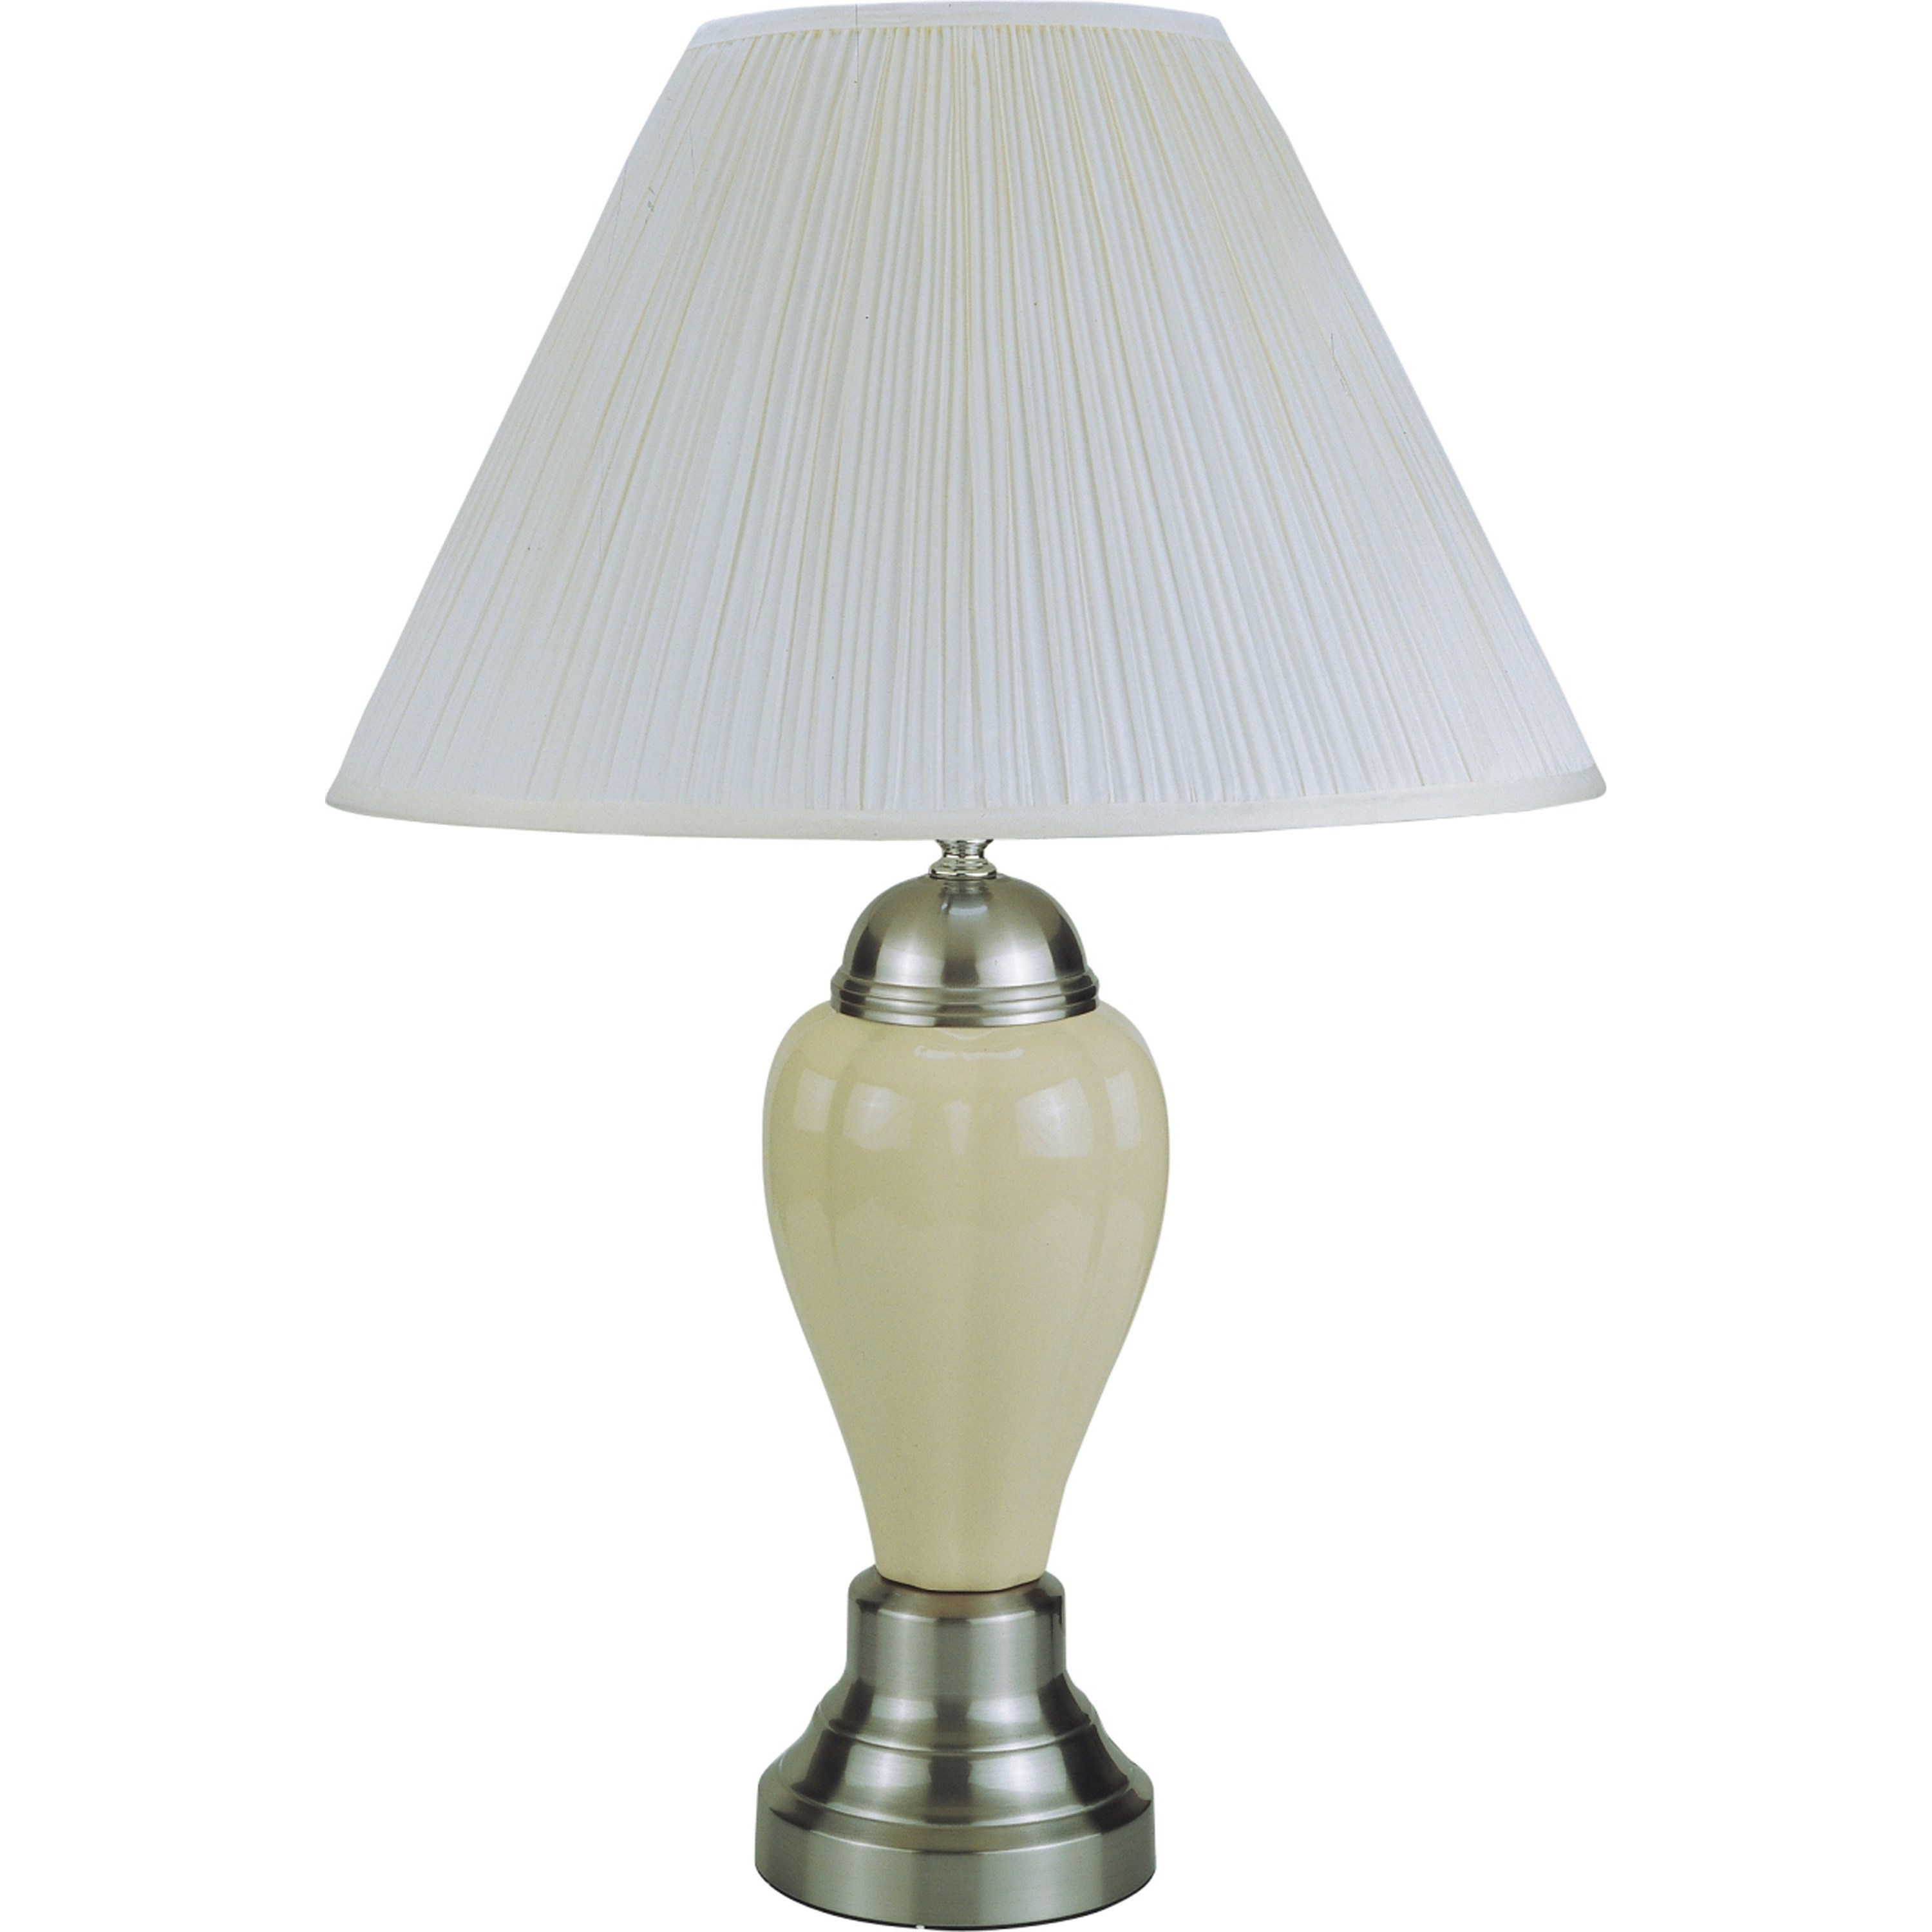 6115 Table Lamp by Crown Mark at A1 Furniture & Mattress